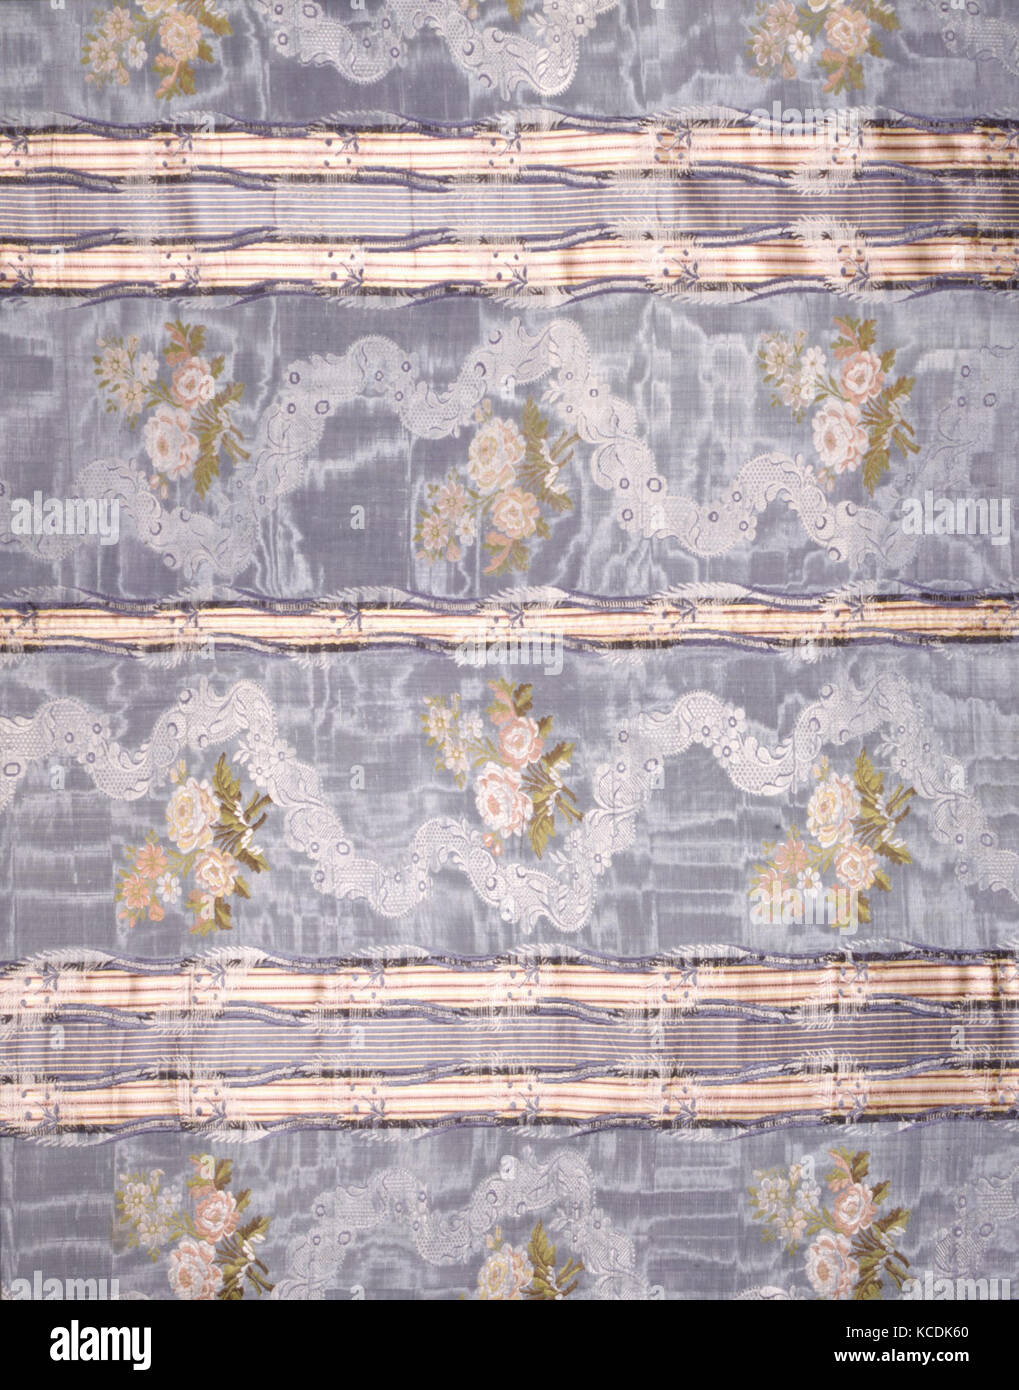 Cover or Hanging, 18th century (?), Spanish (?), Silk, 108 1/2 x 80 in. (278.5 x 205.7 cm), Textiles-Ecclesiastical - Stock Image